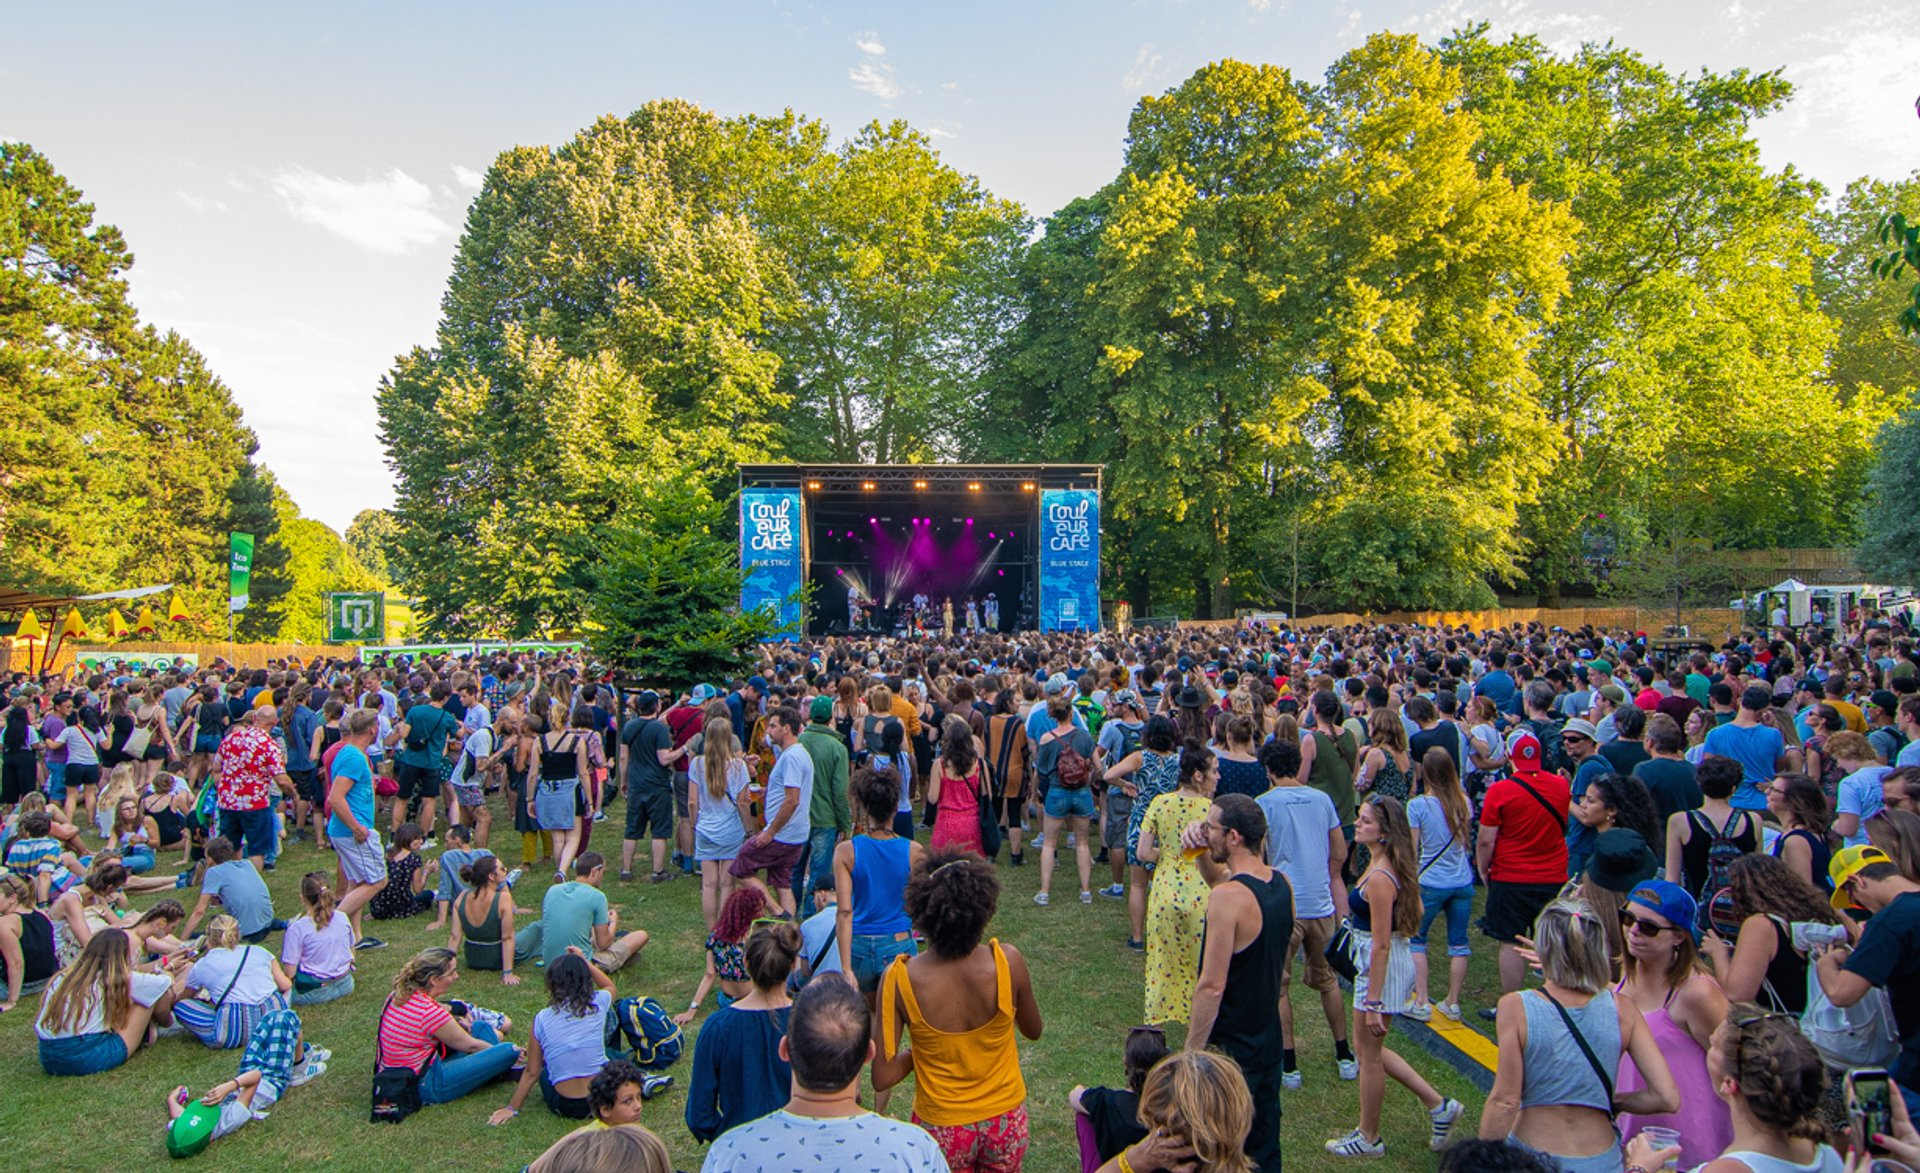 Couleur Café Festival in Brussels - Best Season 2020